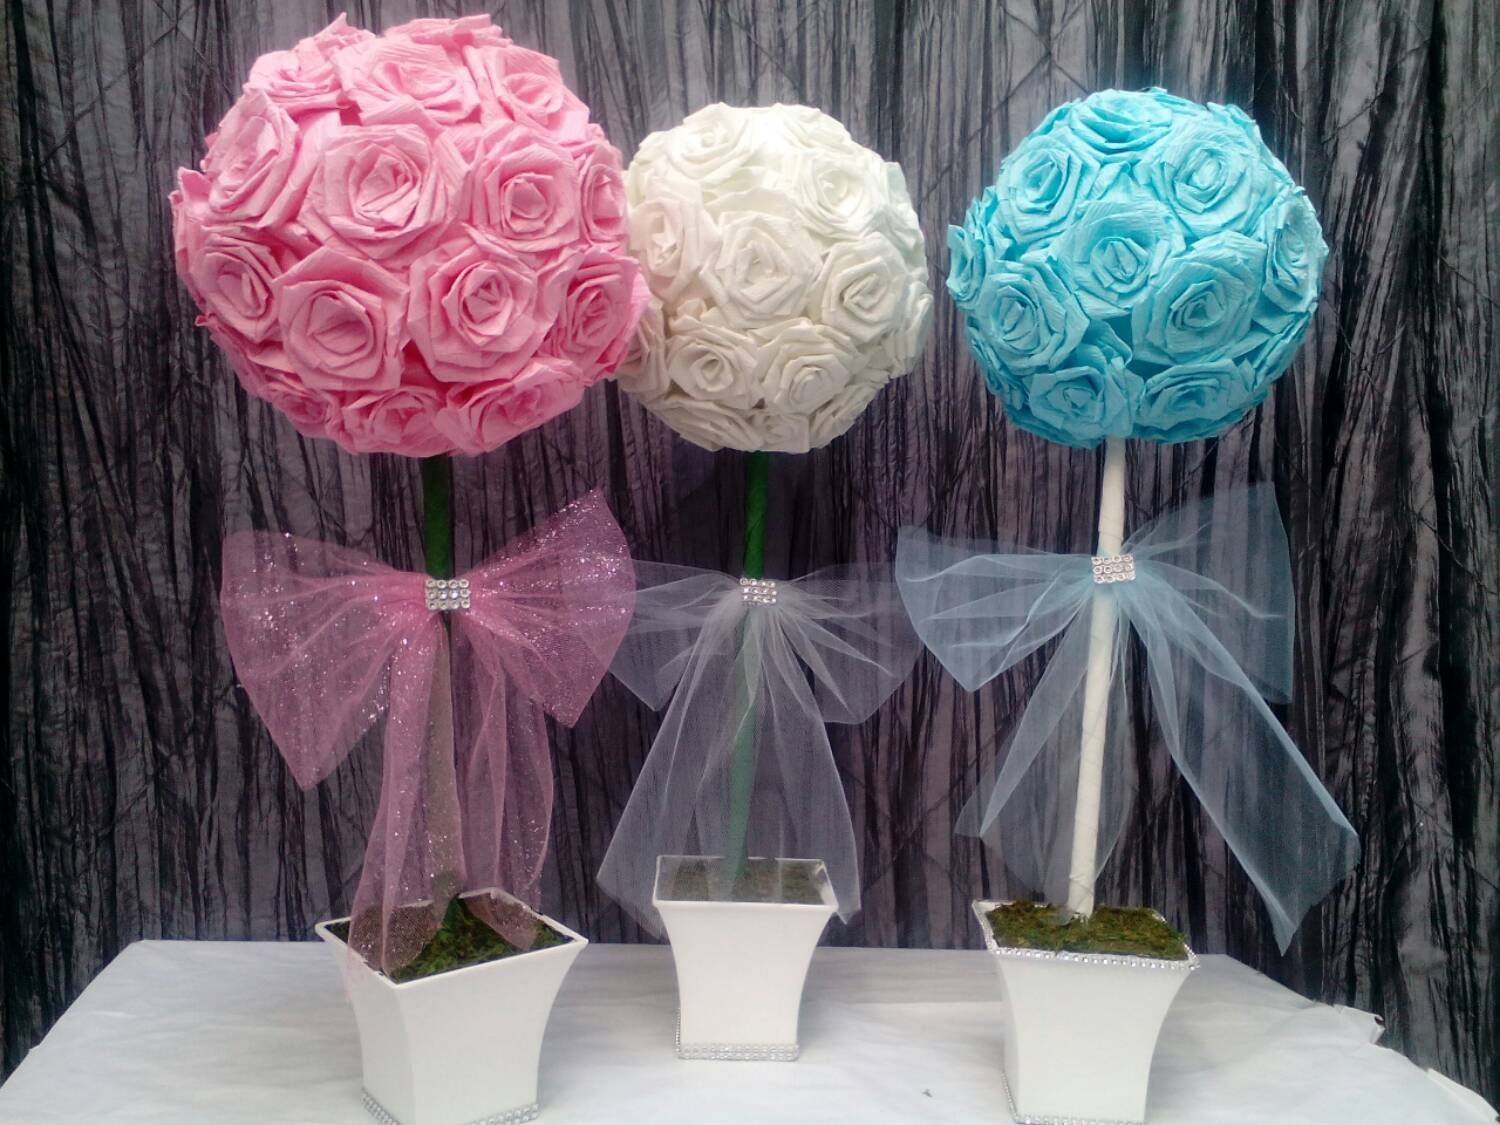 Modern paper flower topiary images wedding and flowers ispiration wedding flowers fresh flowers wedding topiary bouquet centerpiece mightylinksfo